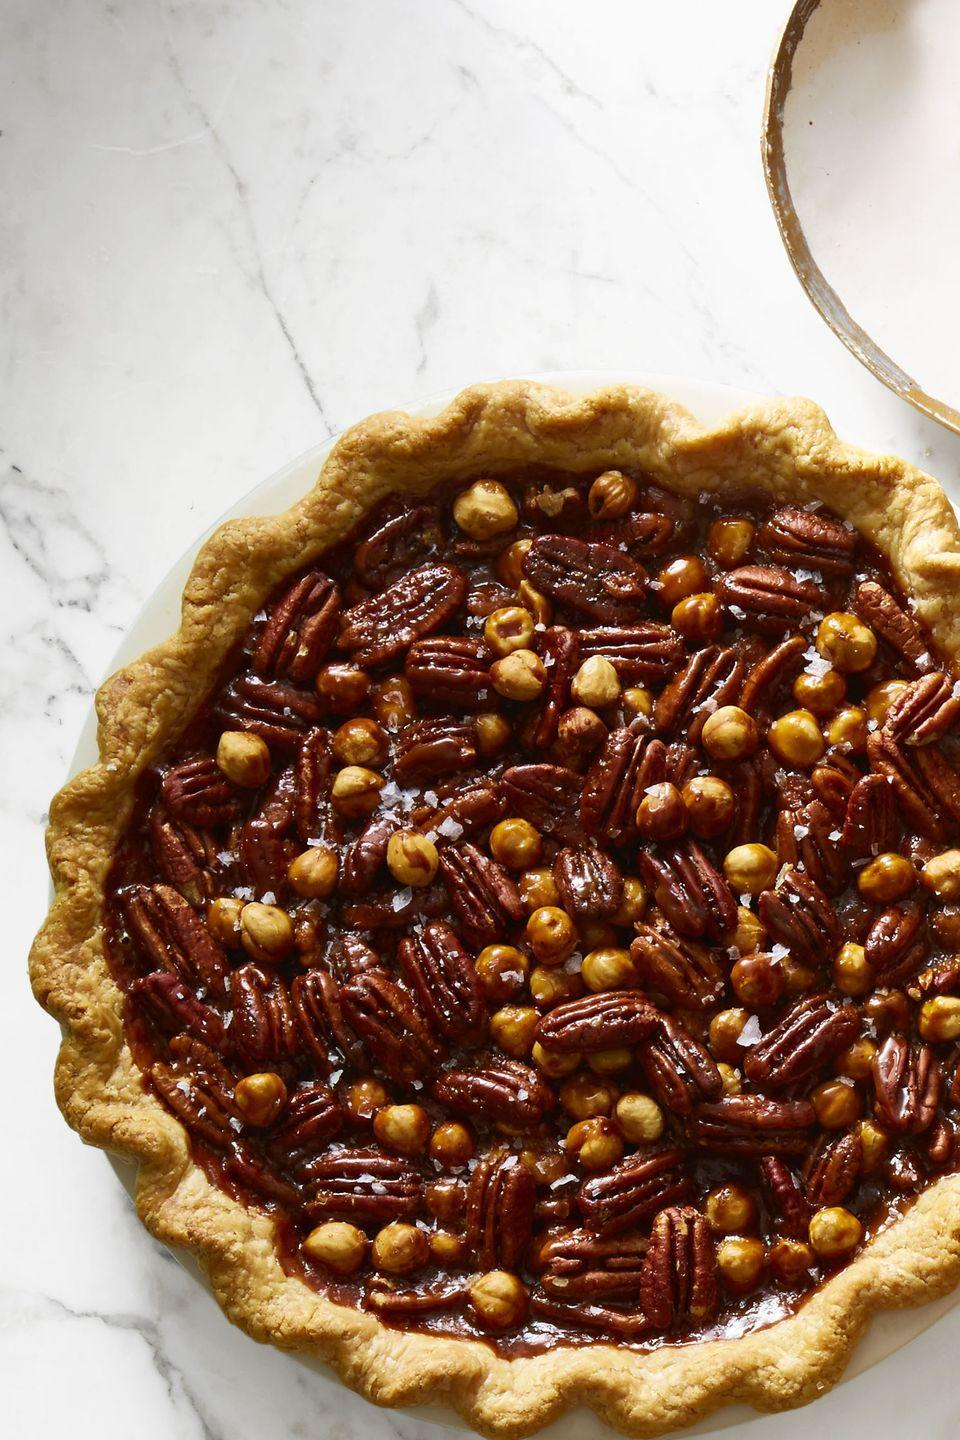 "<p>Treat yourself to a slice (or two) of this pecan pie that's decked out to the max. </p><p><em><a href=""https://www.goodhousekeeping.com/food-recipes/a46628/salted-caramel-mixed-nut-pie-recipe/"" rel=""nofollow noopener"" target=""_blank"" data-ylk=""slk:Get the recipe for Salted Caramel Mixed Nut Pie »"" class=""link rapid-noclick-resp"">Get the recipe for Salted Caramel Mixed Nut Pie »</a></em> </p>"